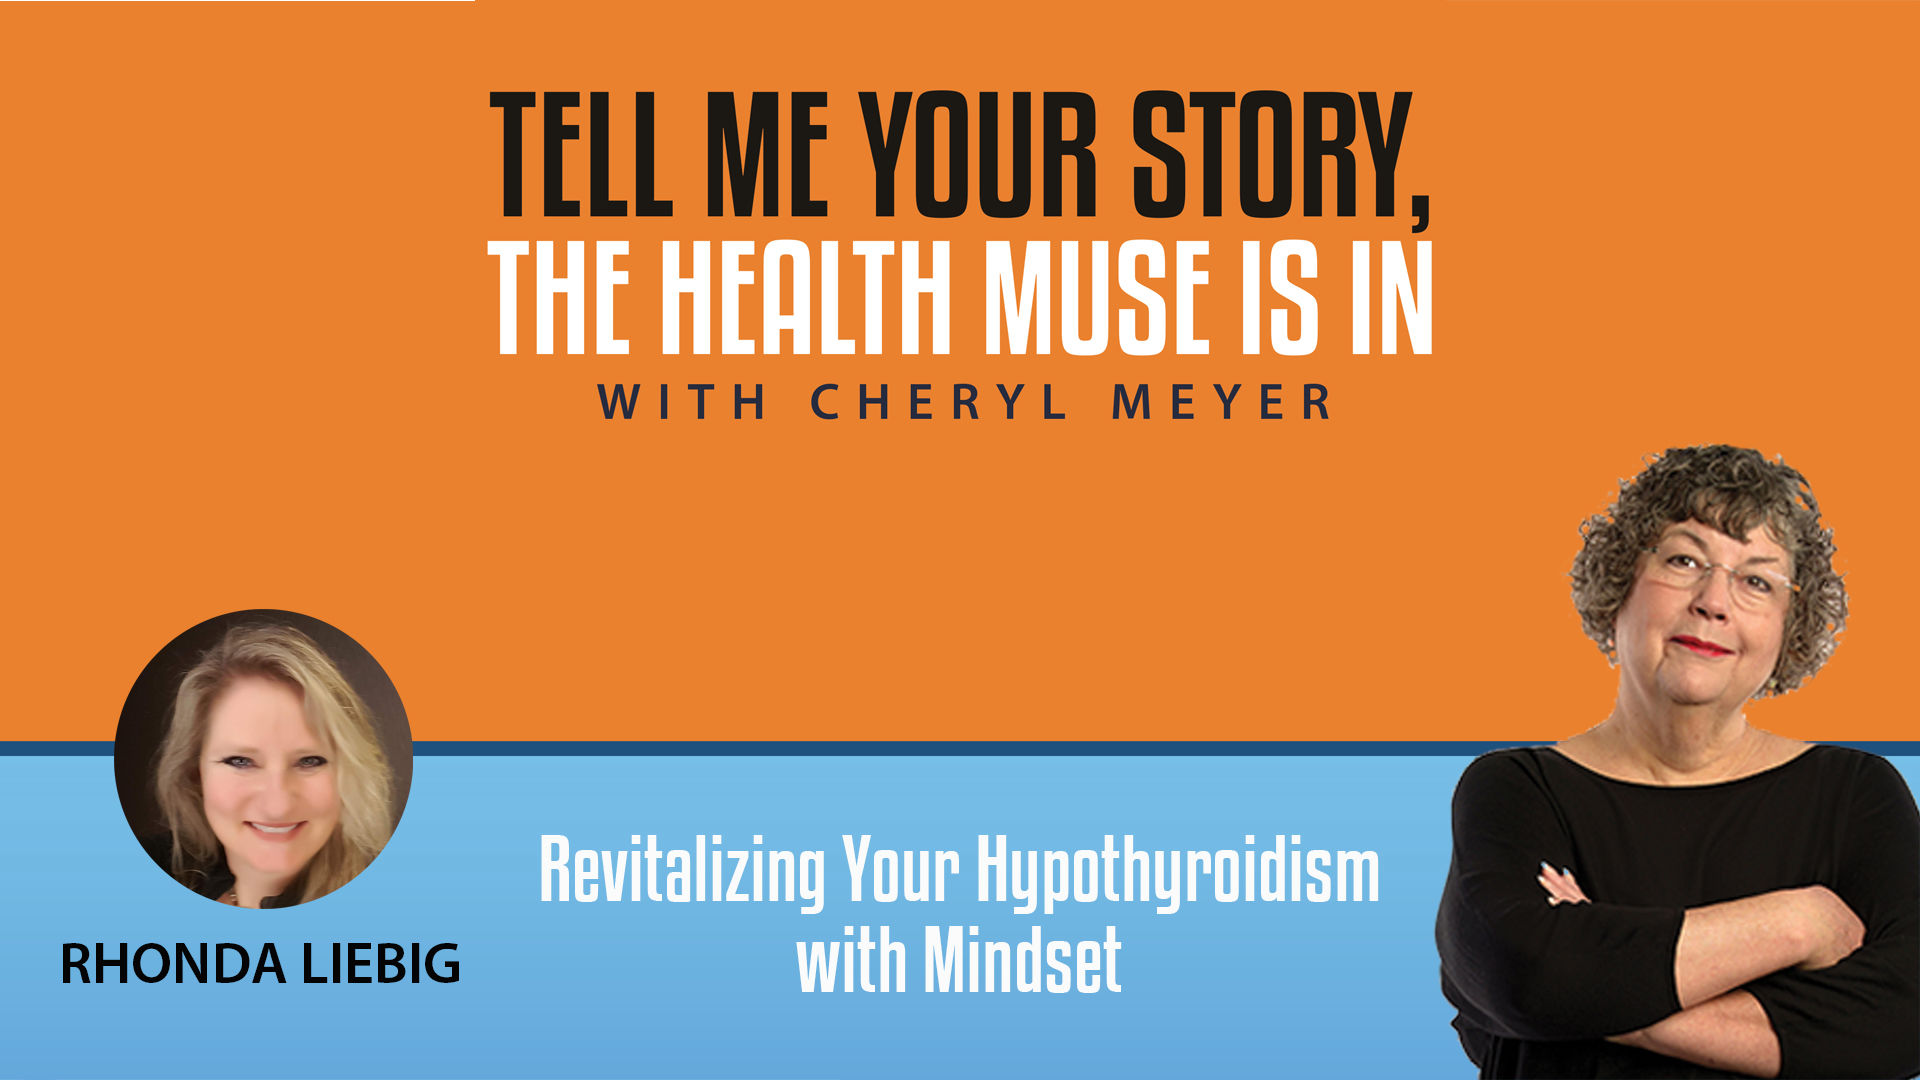 Tell Me Your Story Rhonda Liebig, Revitalizing Hyperthyroidism with Mindset